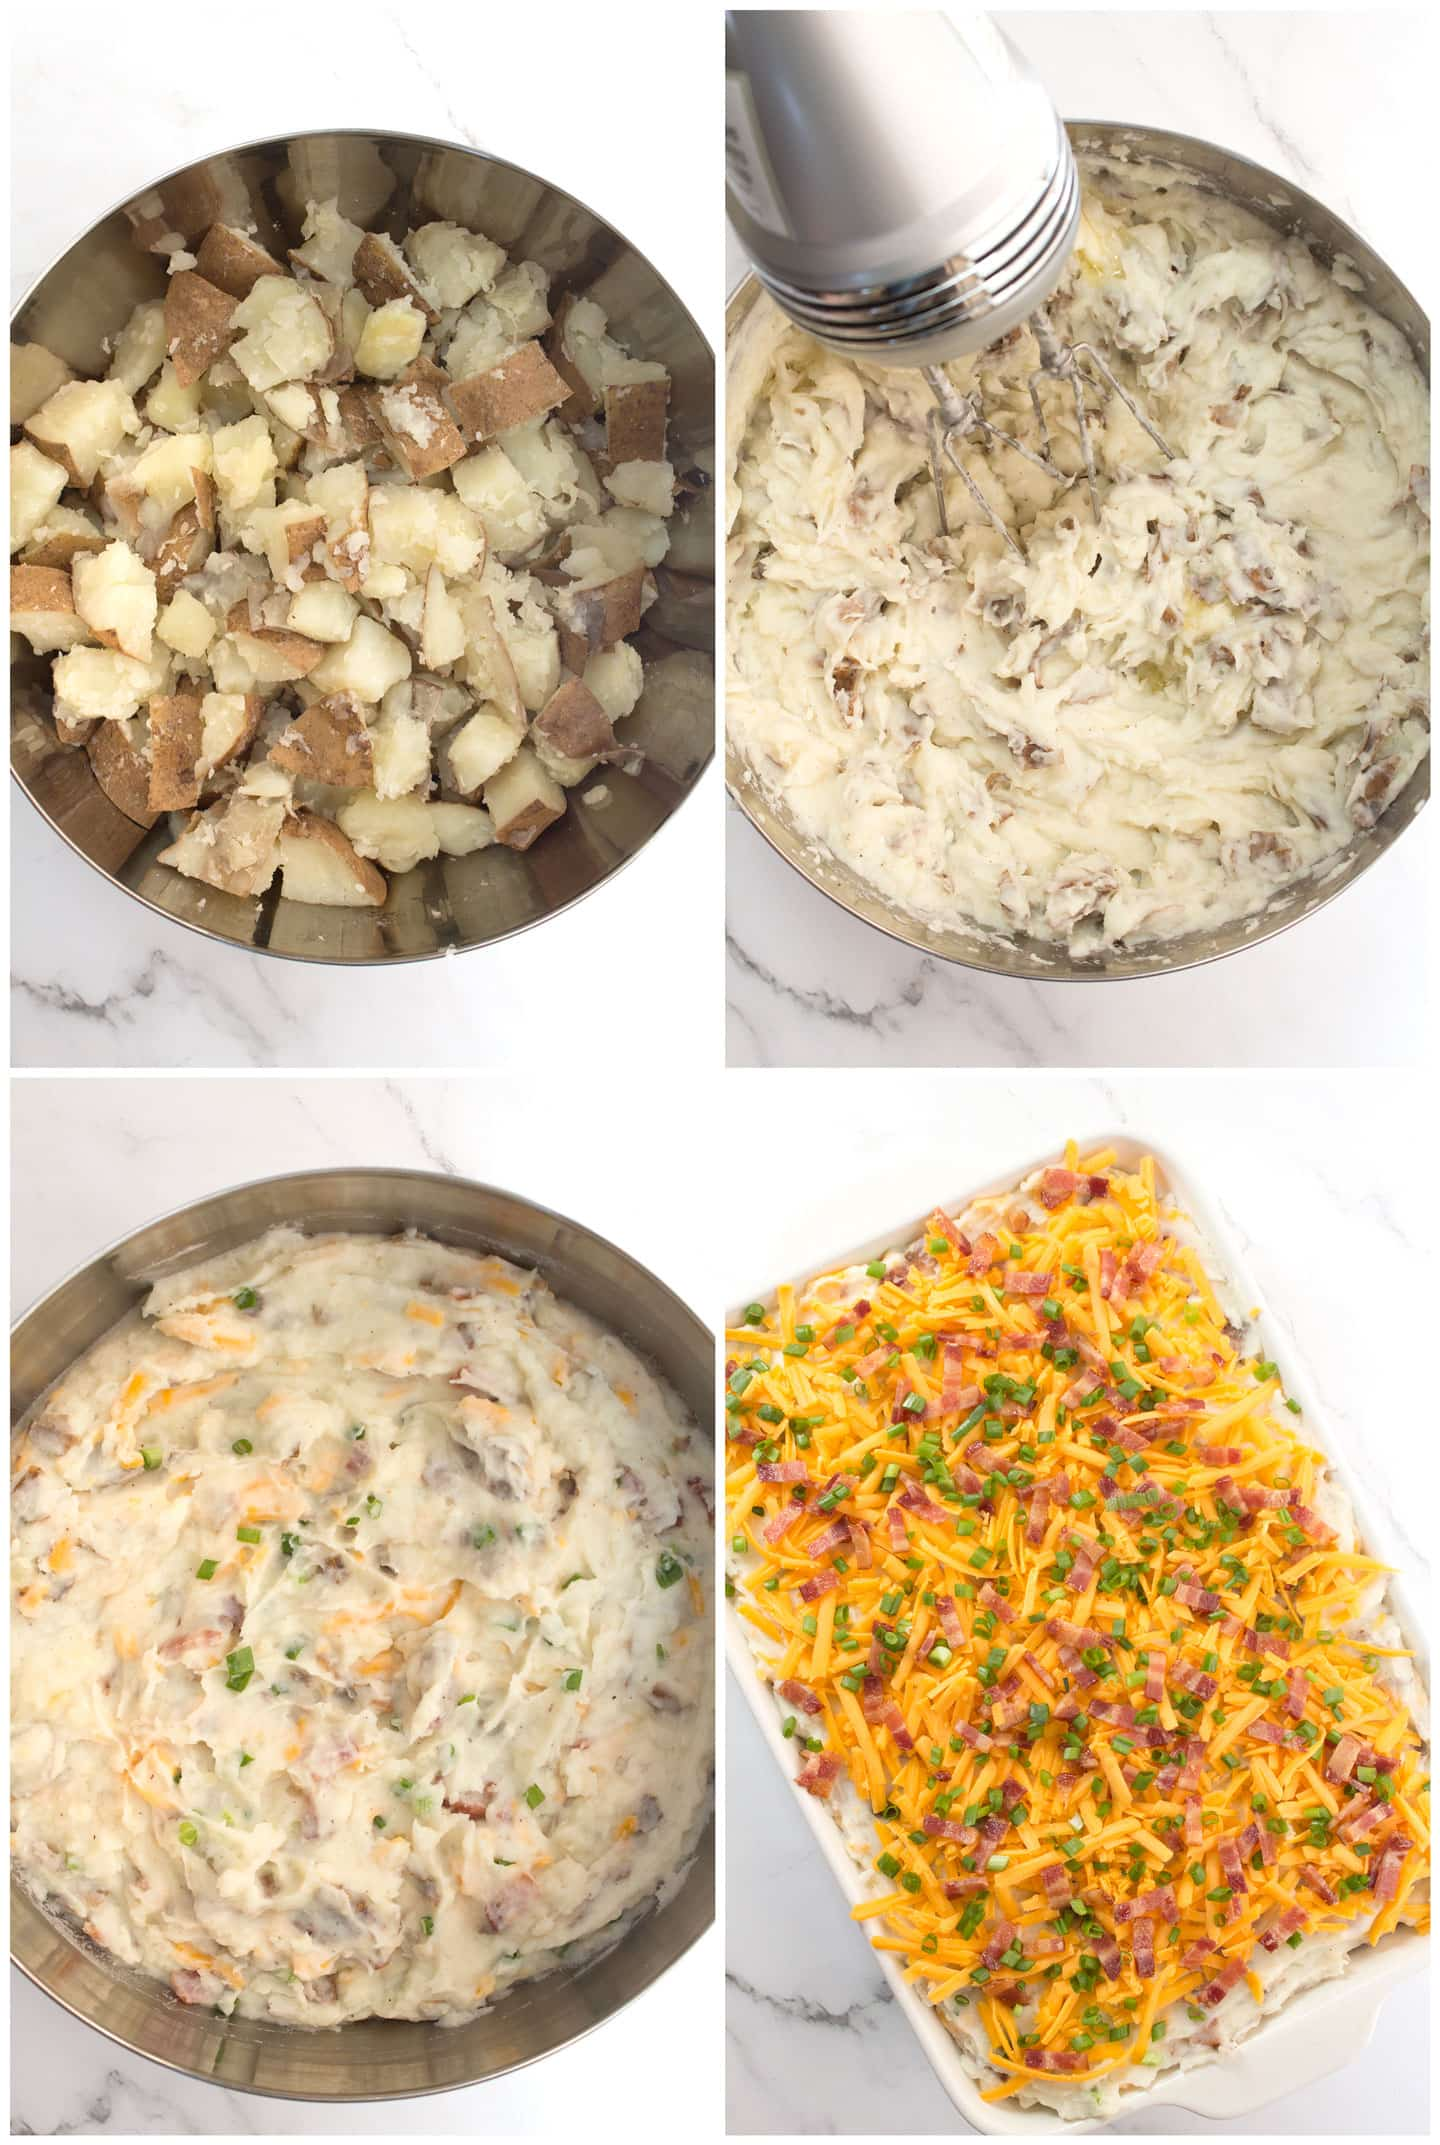 Potatoes in a bowl, potatoes after being mashed with beaters, potatoes with cheese, bacon, and green onions, potato mixture in baking pan.